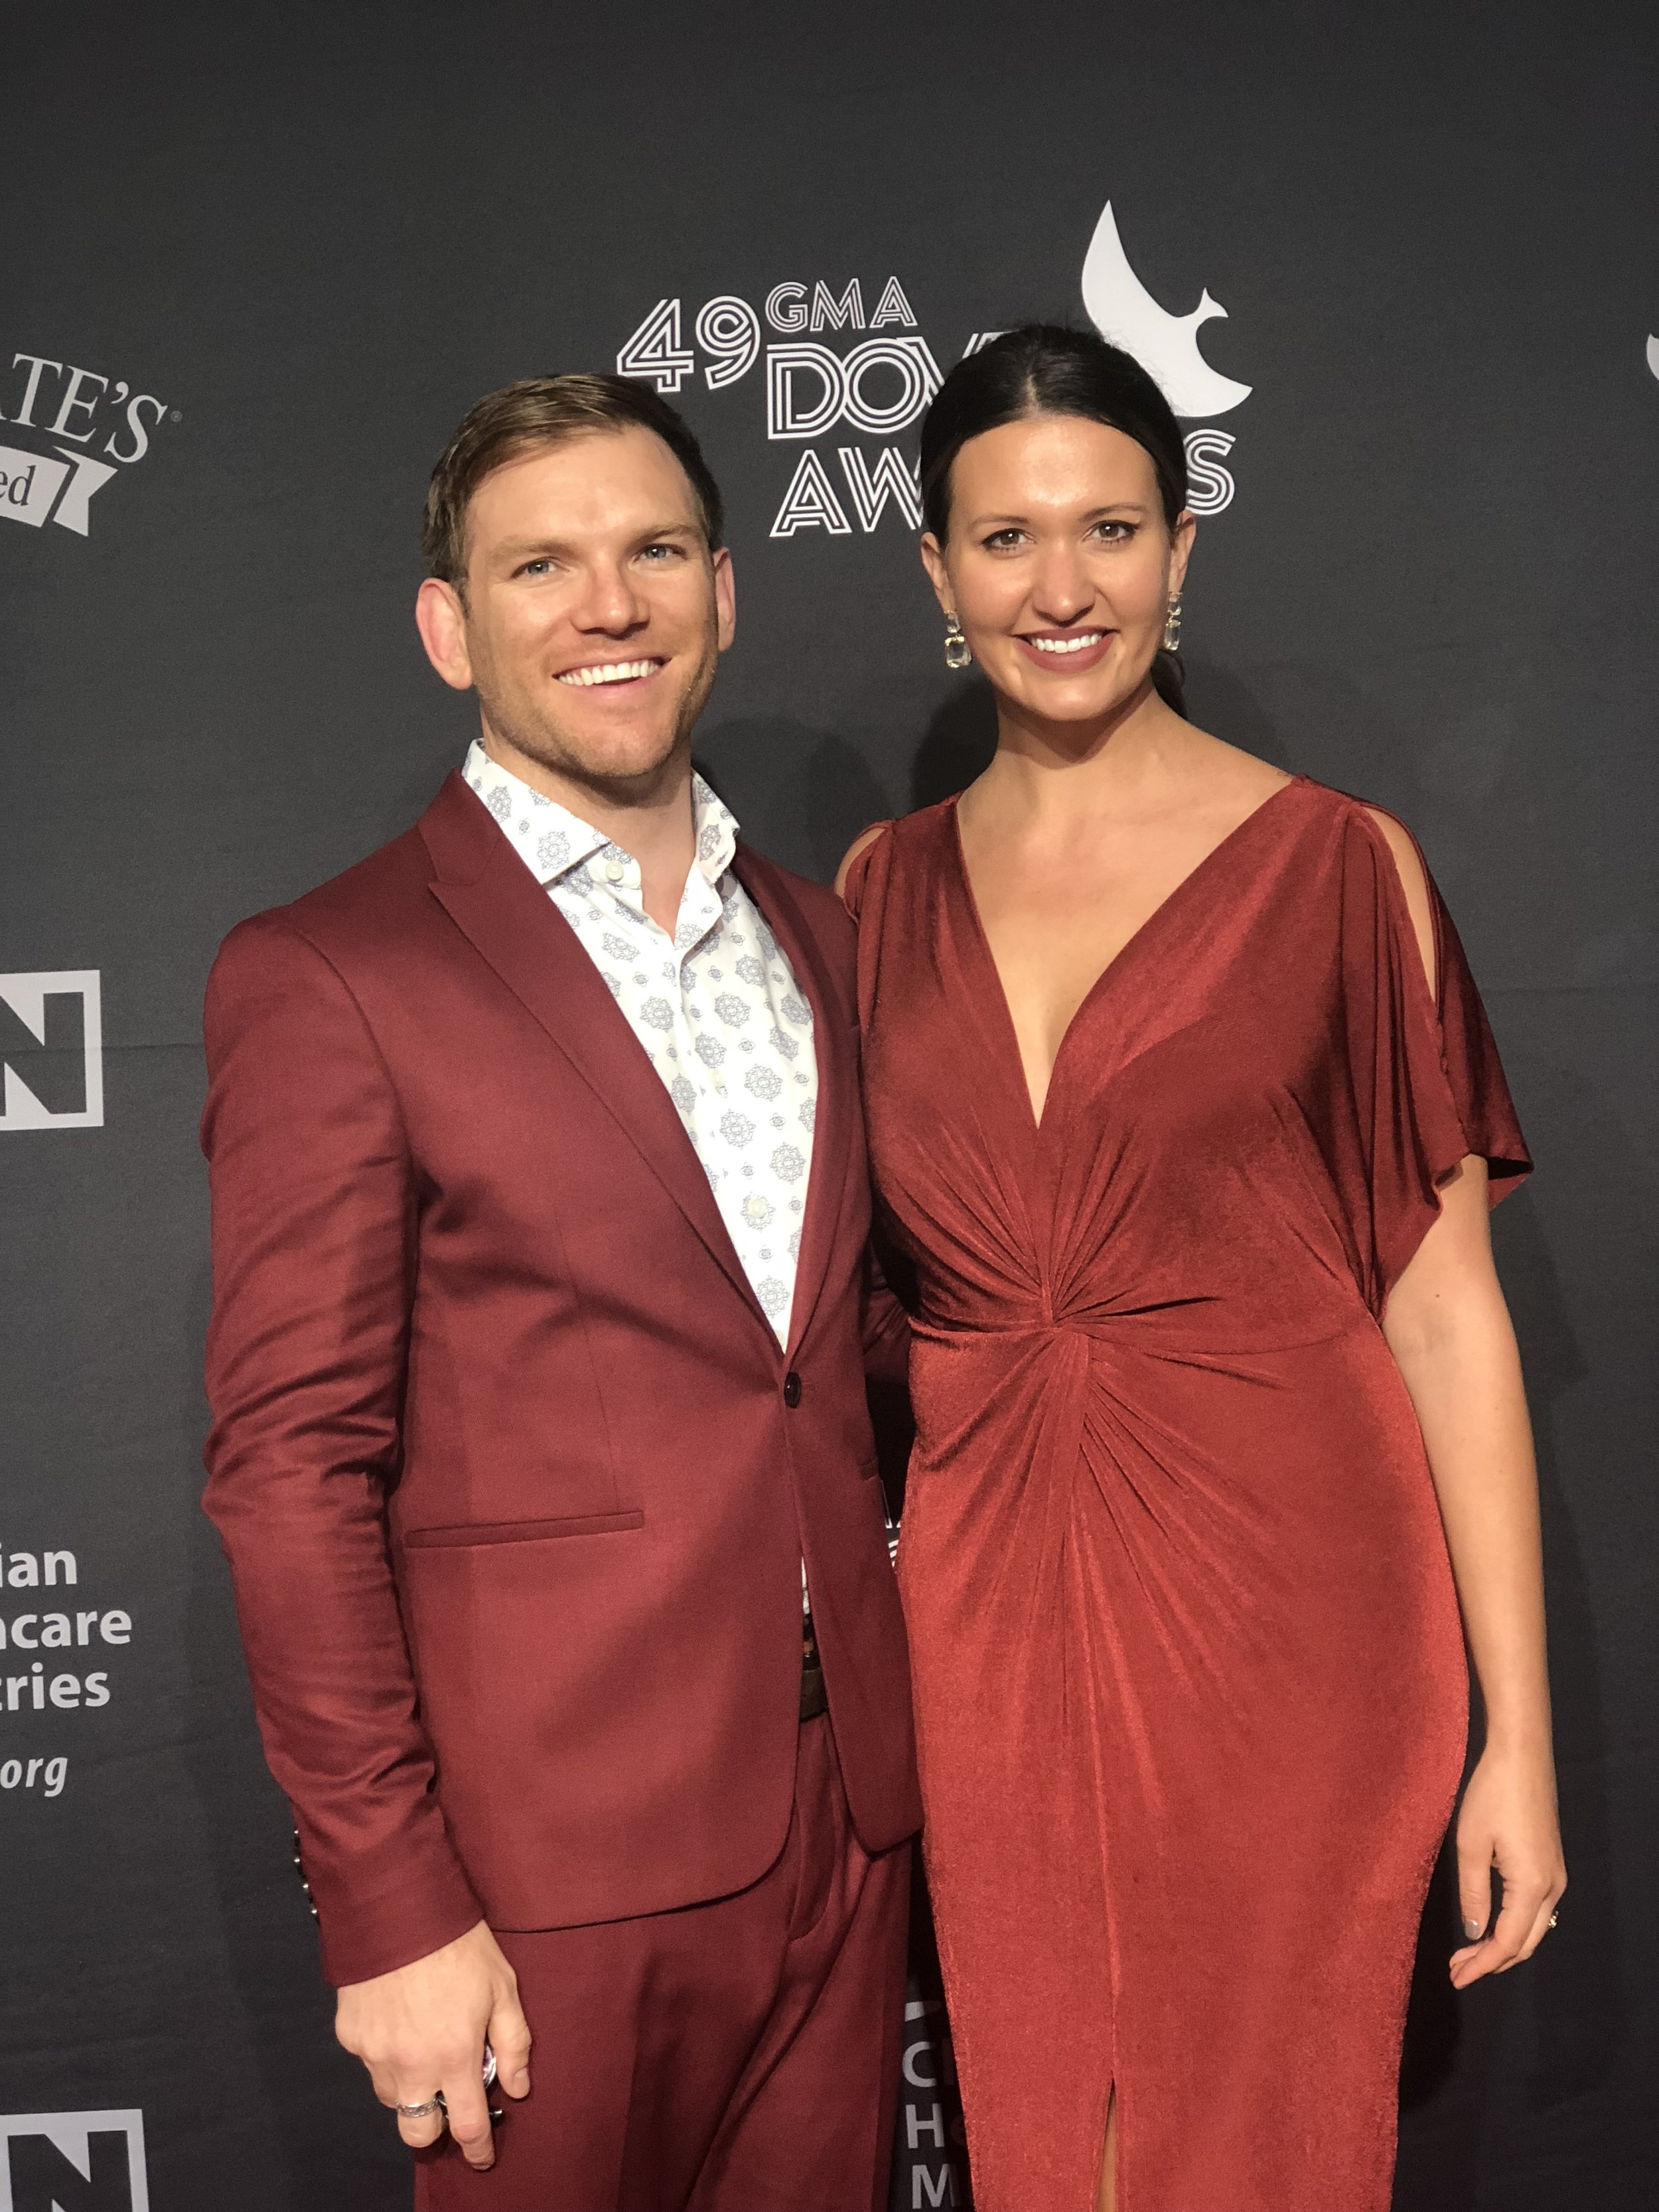 Rick Seibold and Rachel Blankenship arrive at the 49th Annual Dove Awards